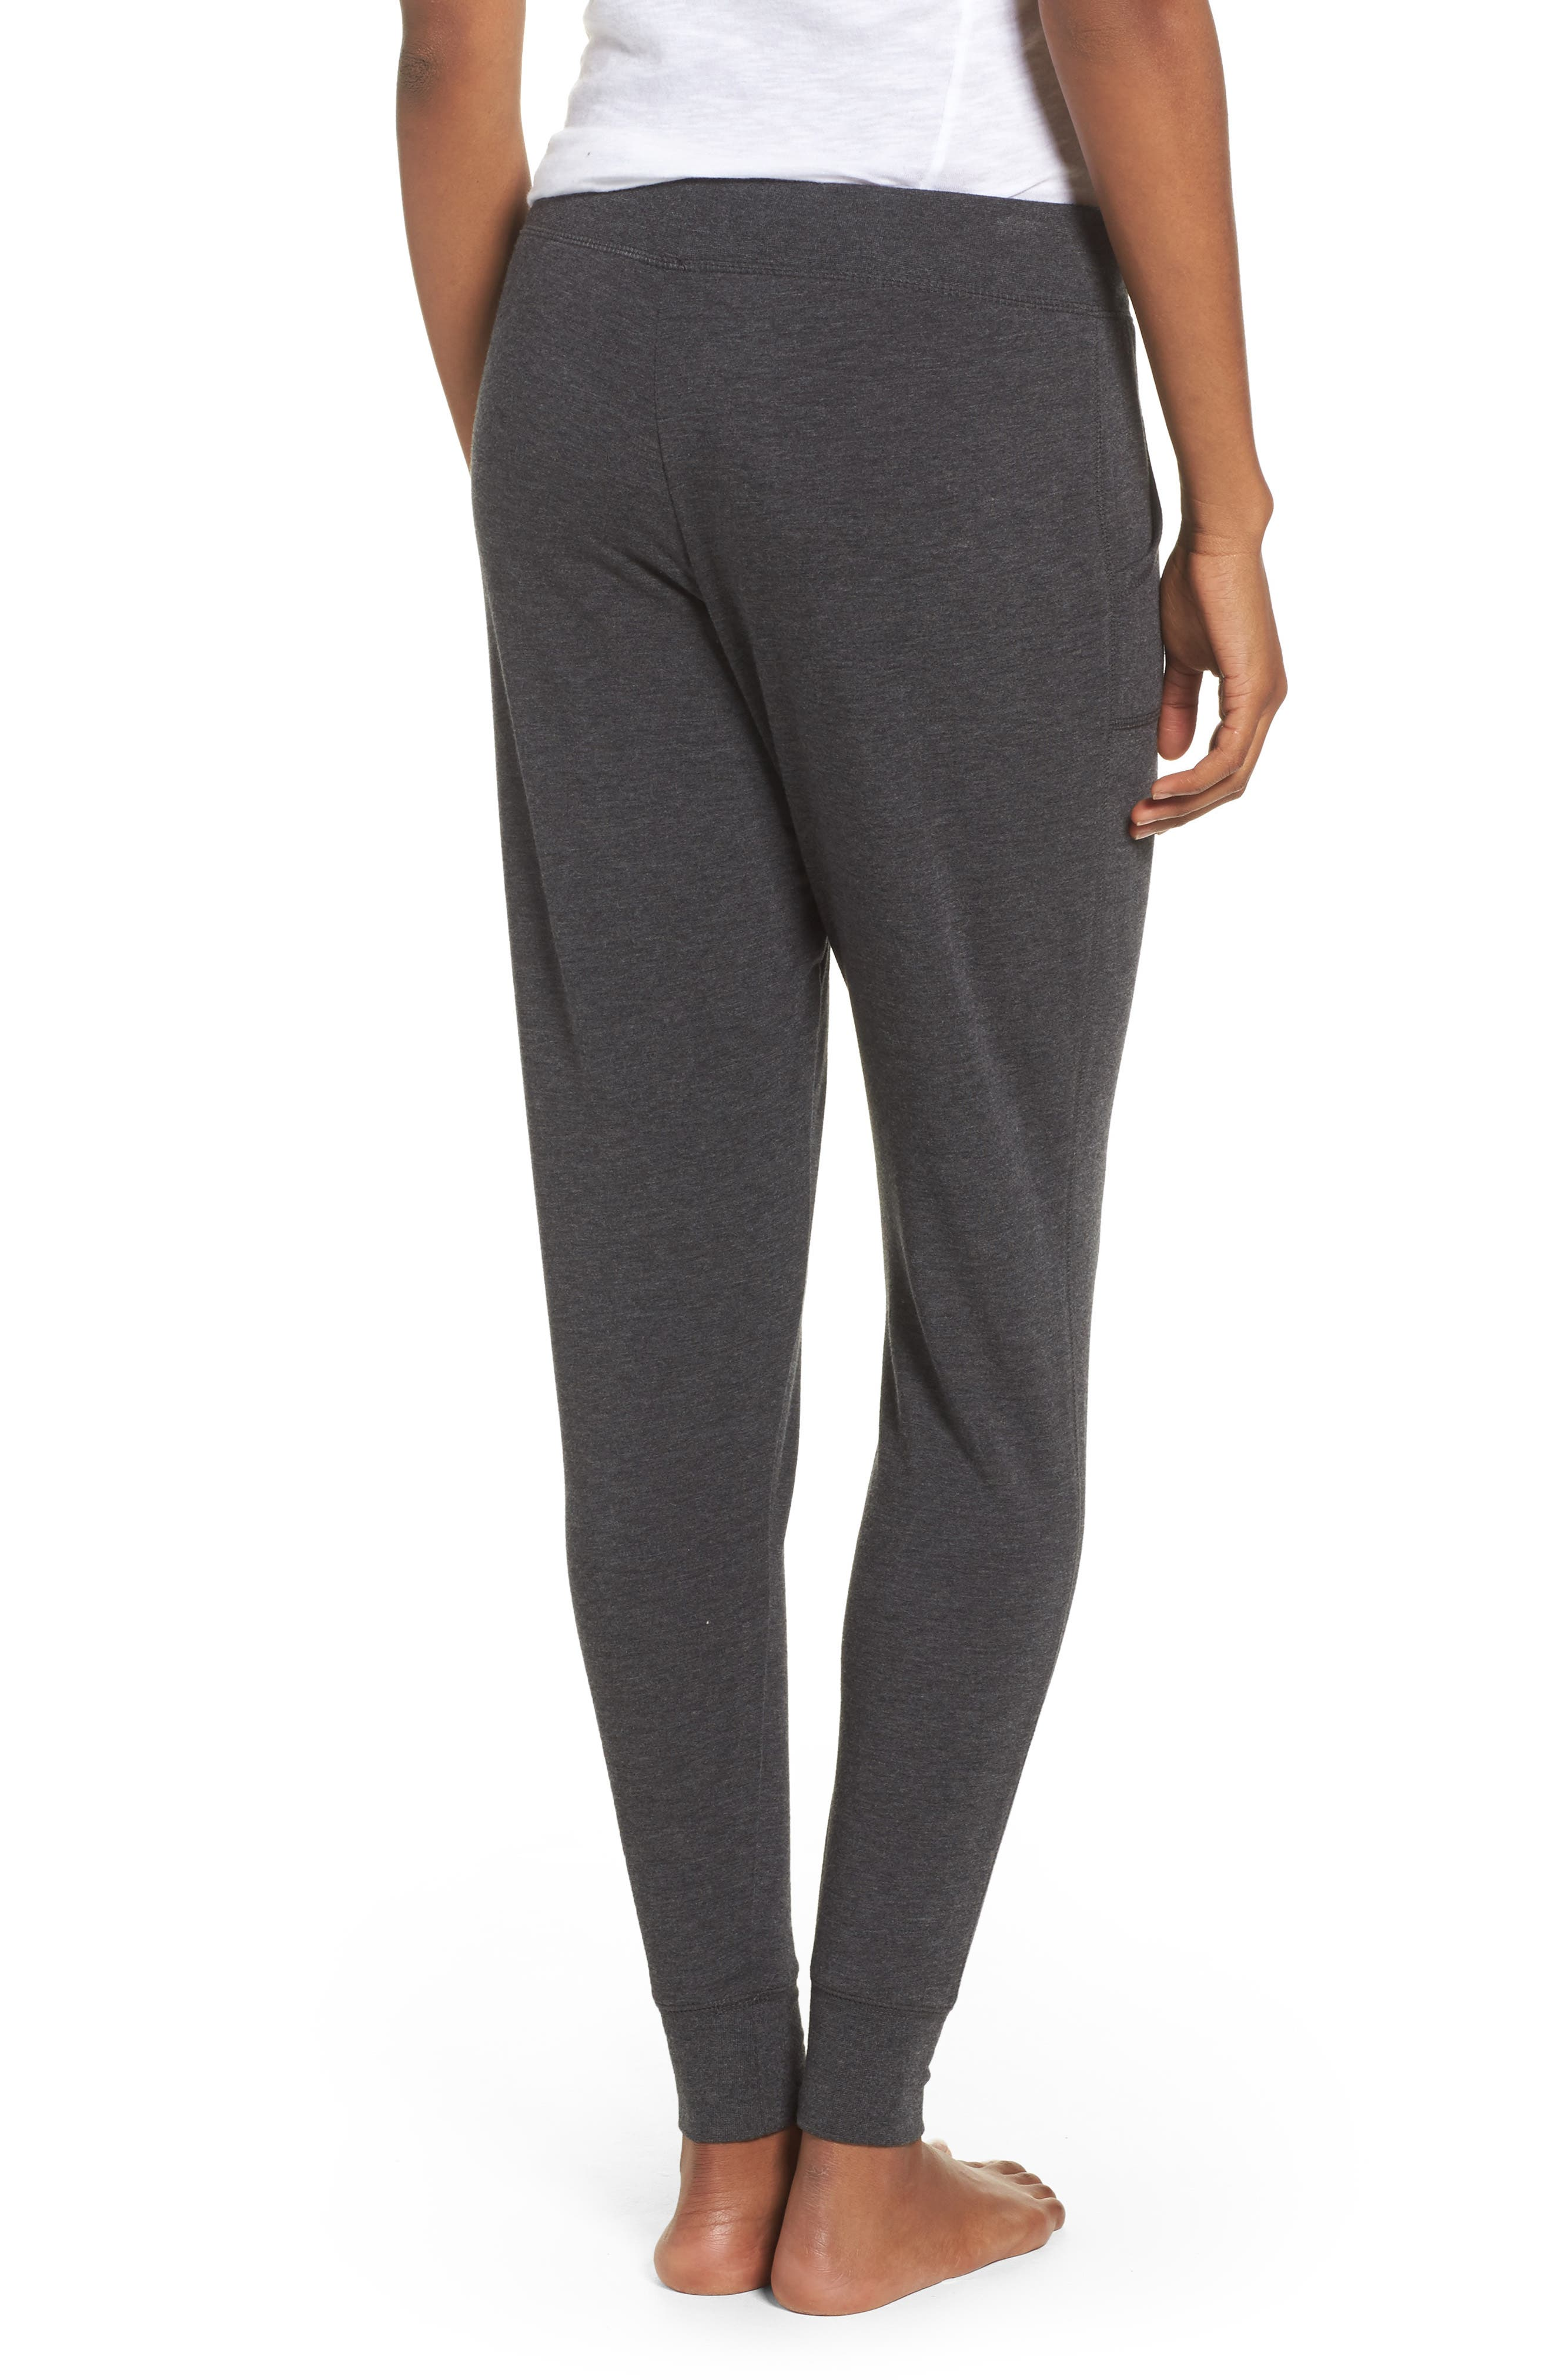 All About It Lounge Pants,                             Alternate thumbnail 3, color,                             Grey Wolf Heather